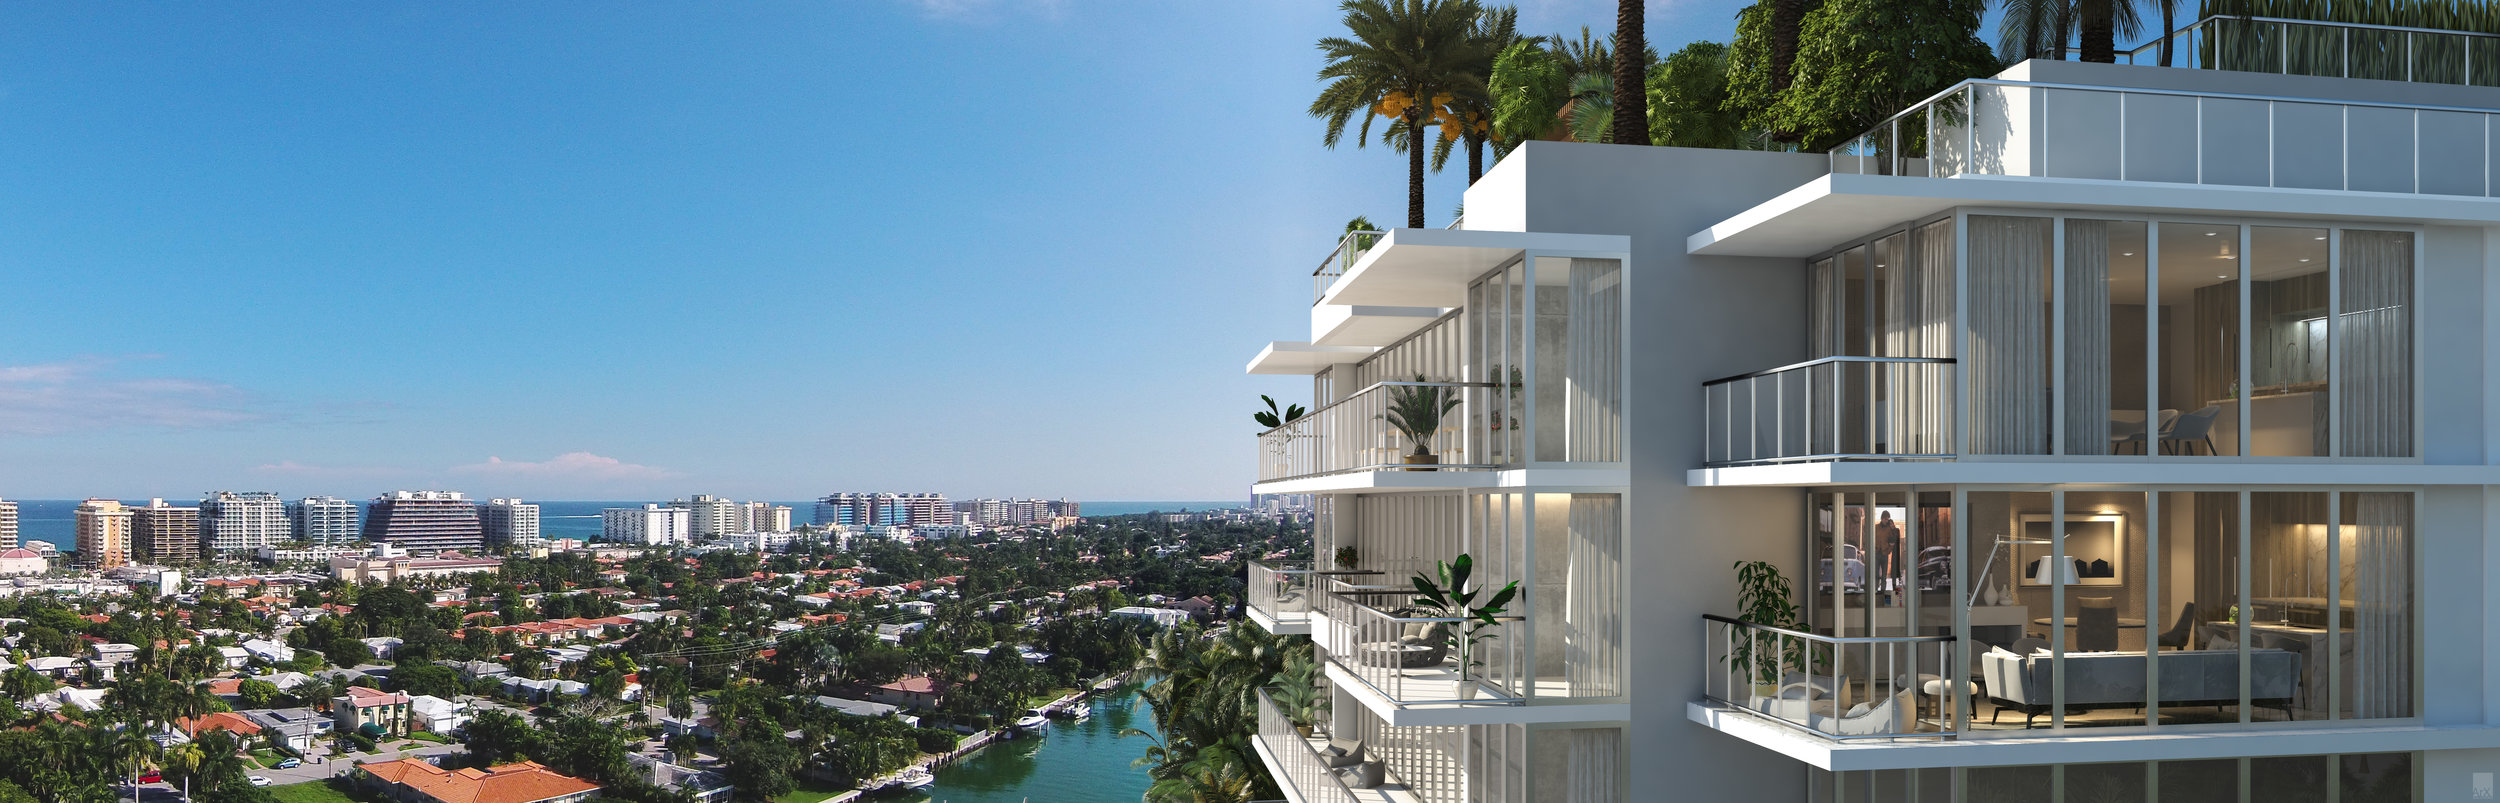 The+Revuelta+Architecture-Designed+Bijou+Bay+Harbor+Now+75%+Sold+Out (6).jpeg